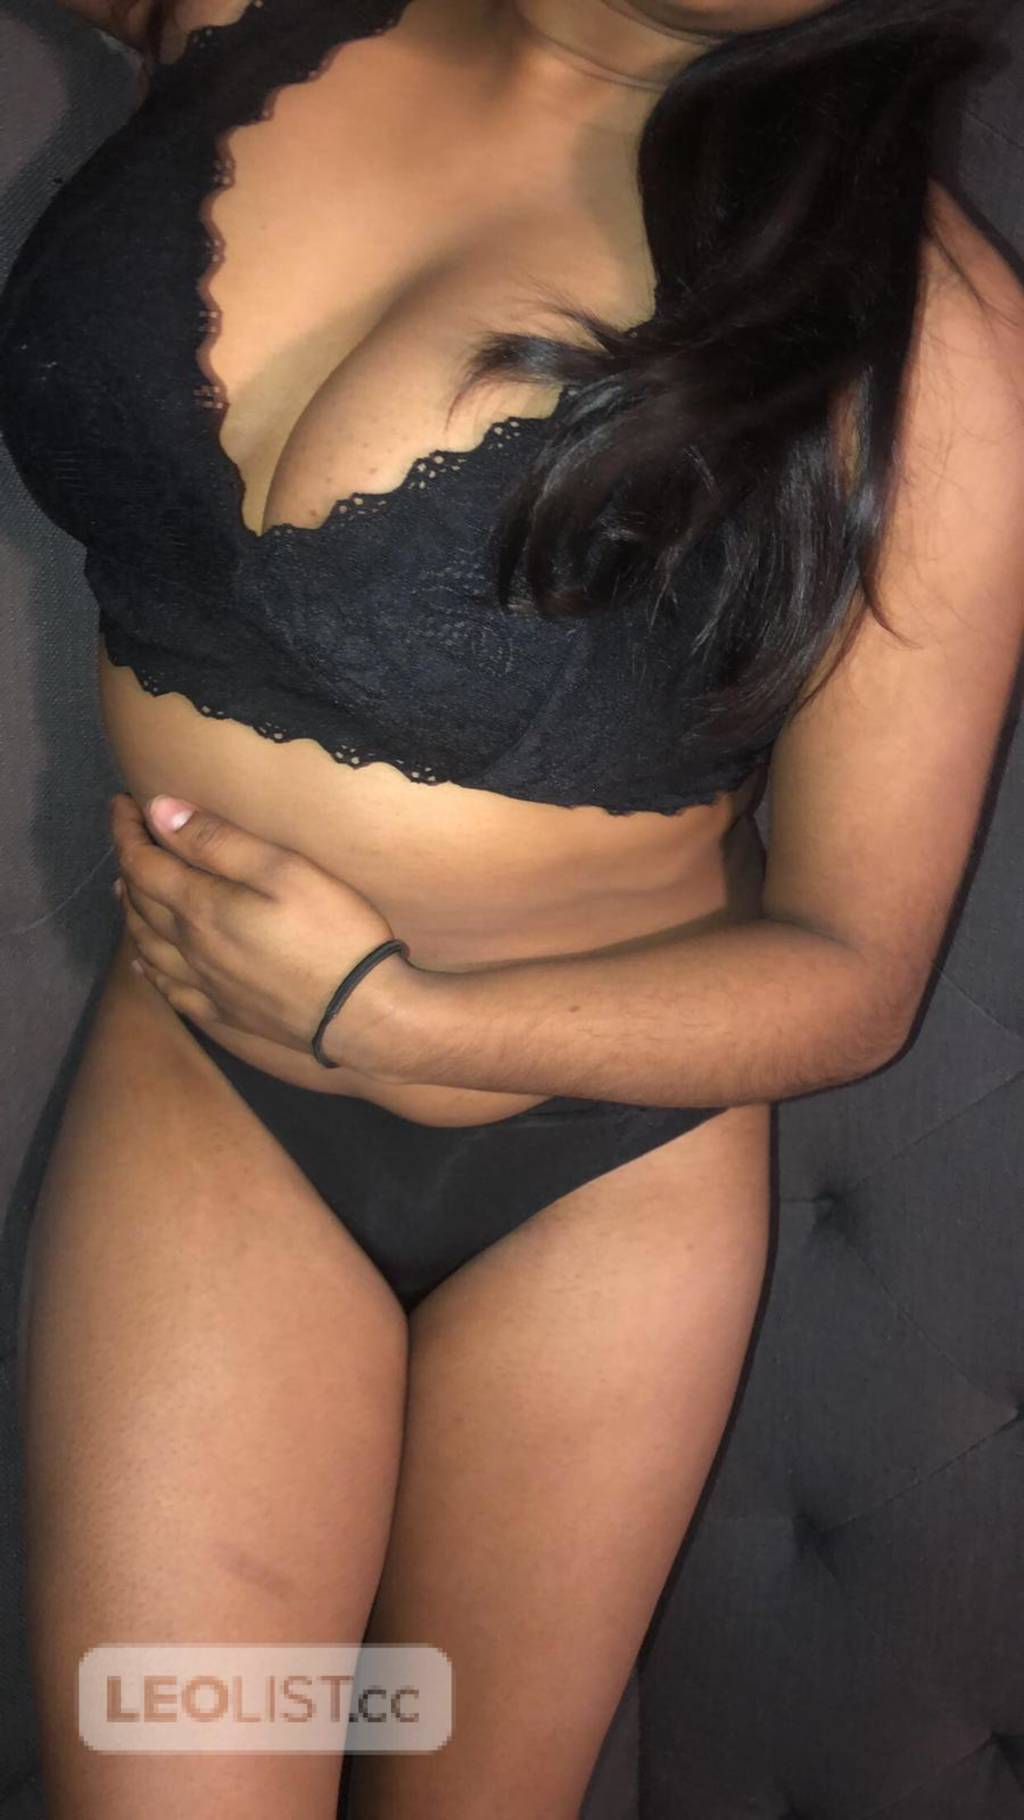 *New* Indian college girl in town